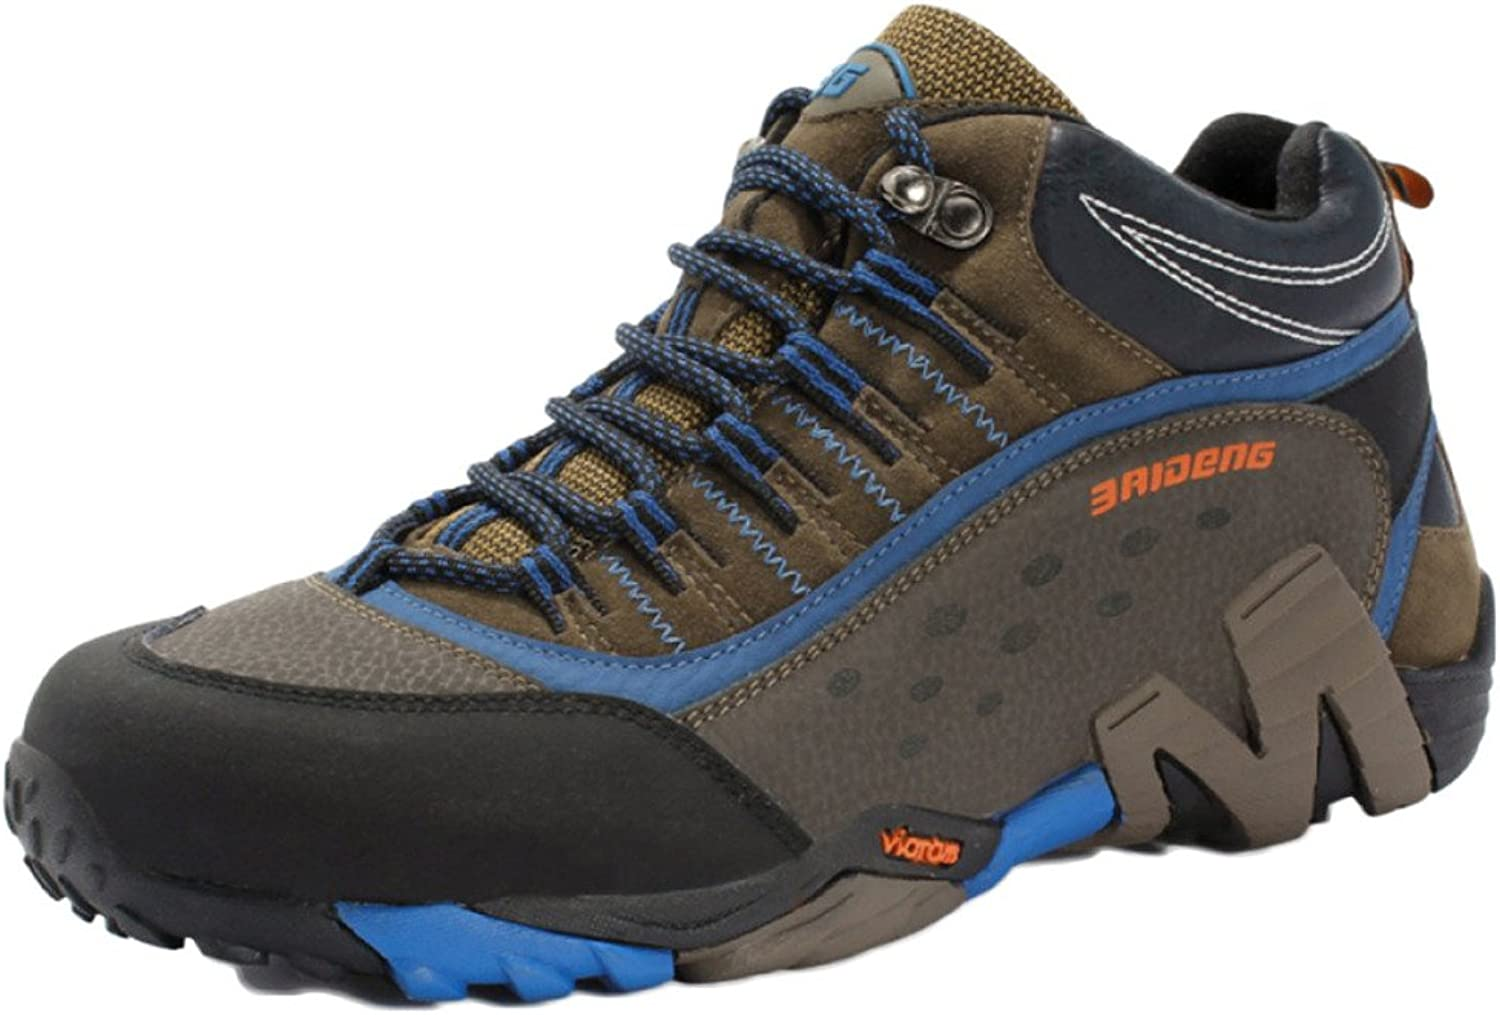 Hiking shoes for Men Waterproof Lightweight High Rise Walking shoes Large Size Outdoor Leather Warm Wear